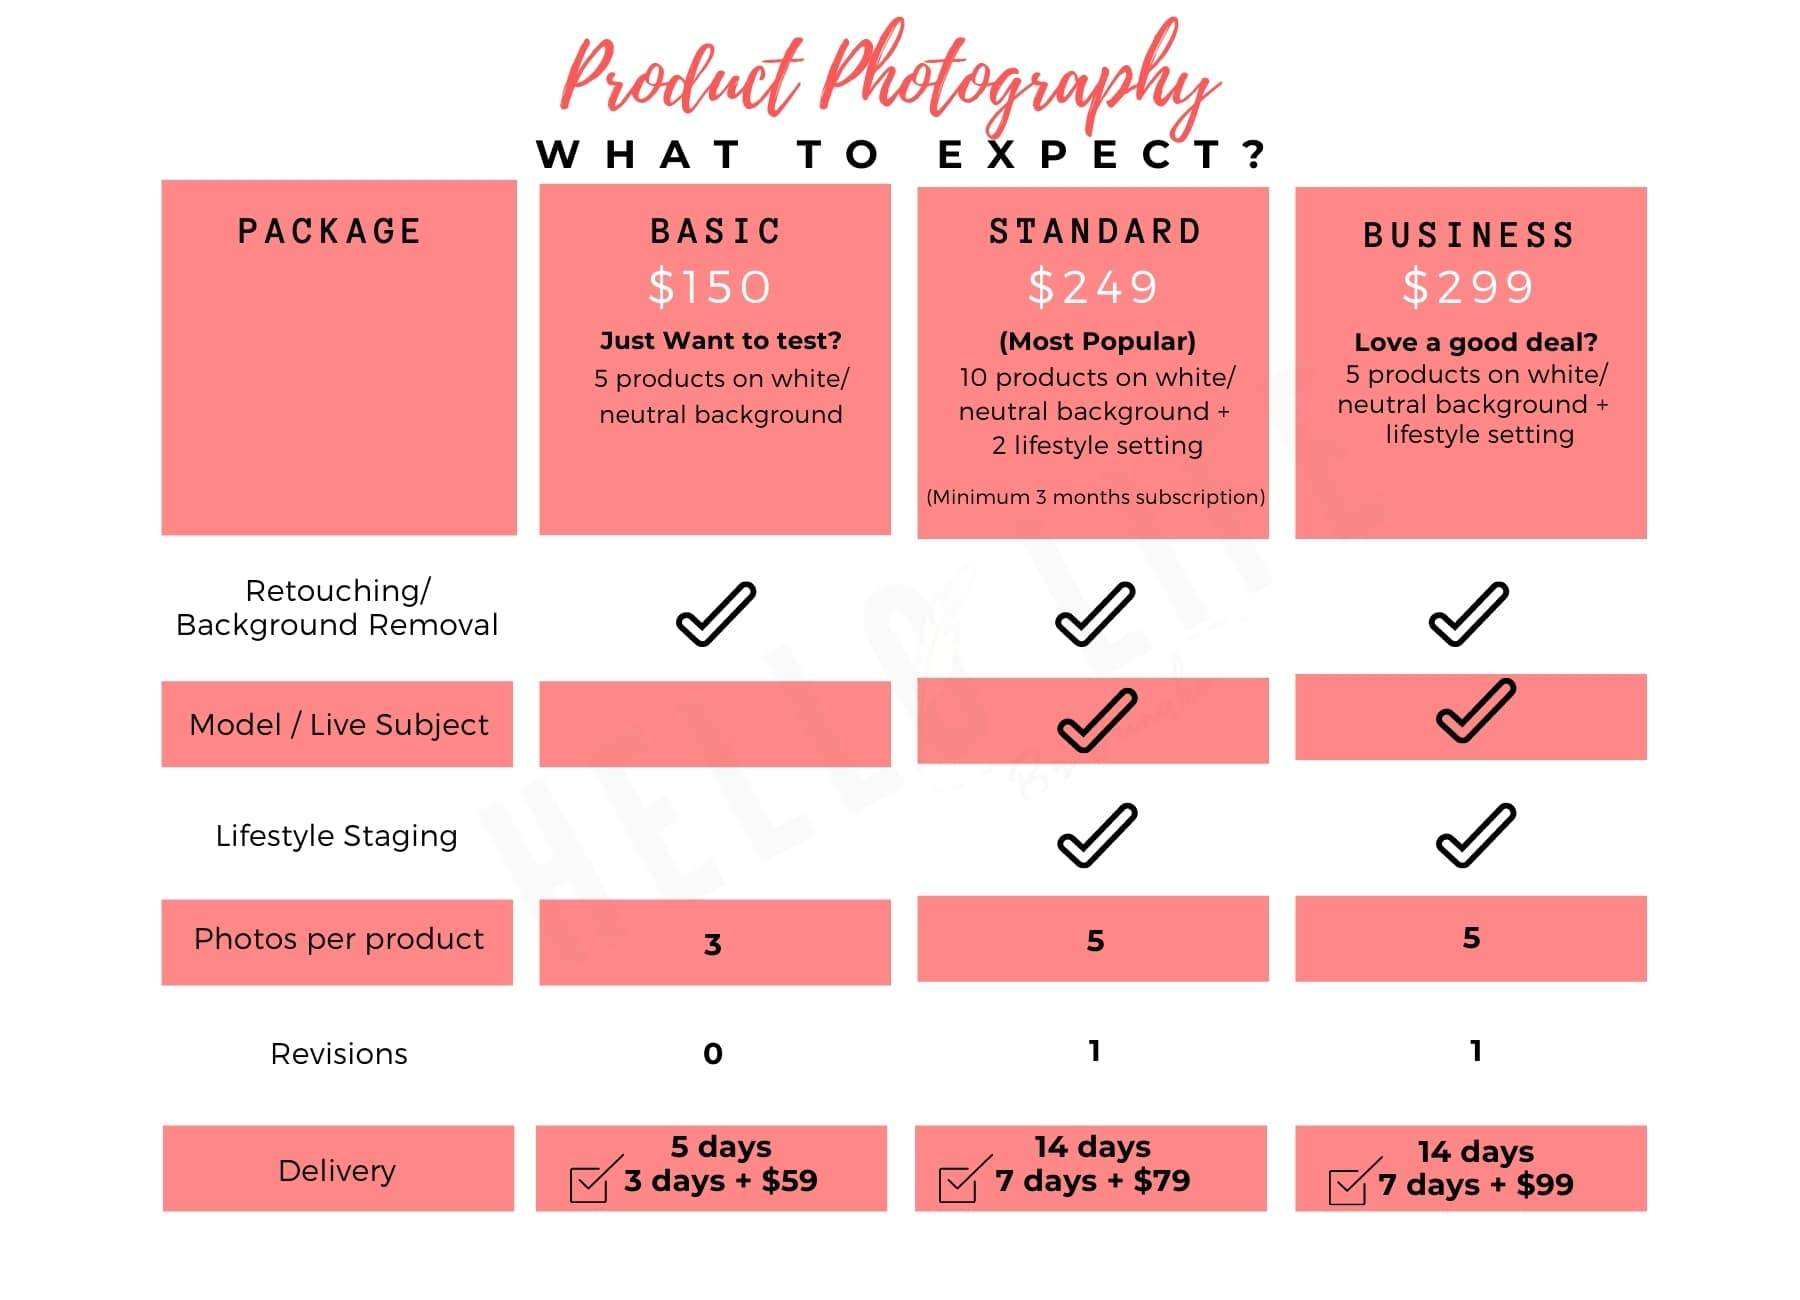 Photography for products offered by Hello Life